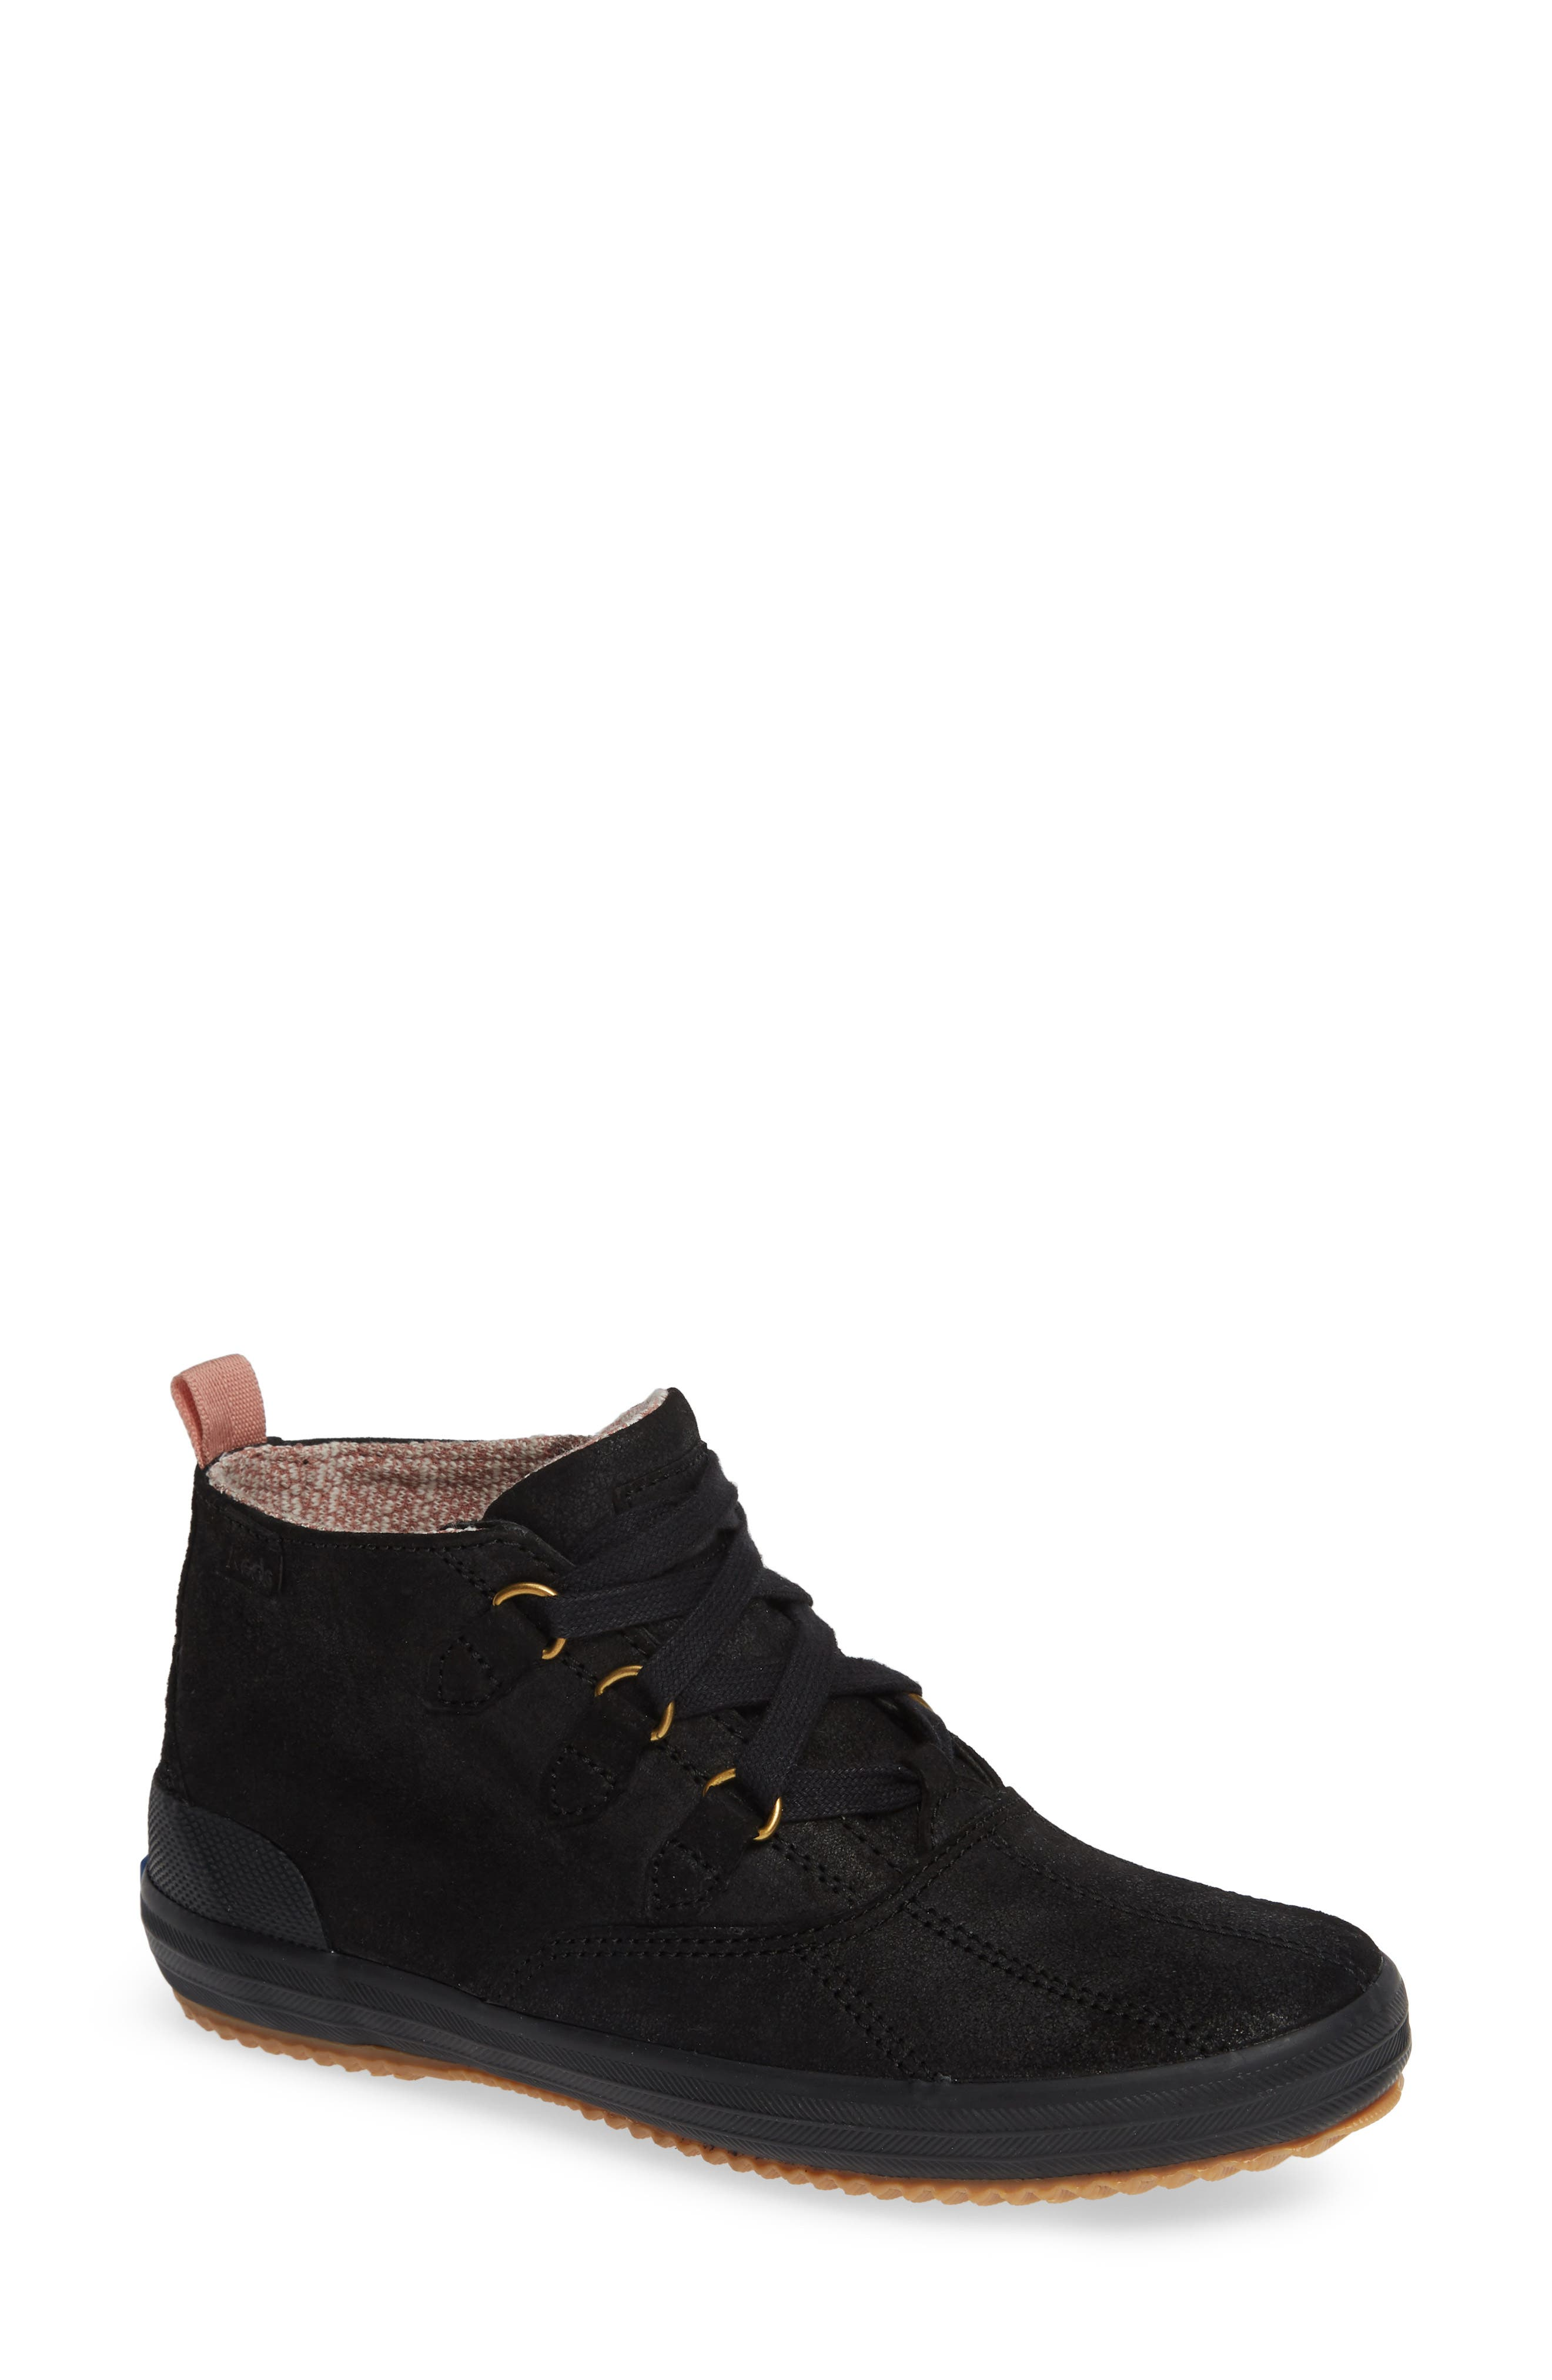 Scout Chukka Boot,                         Main,                         color, BLACK SUEDE